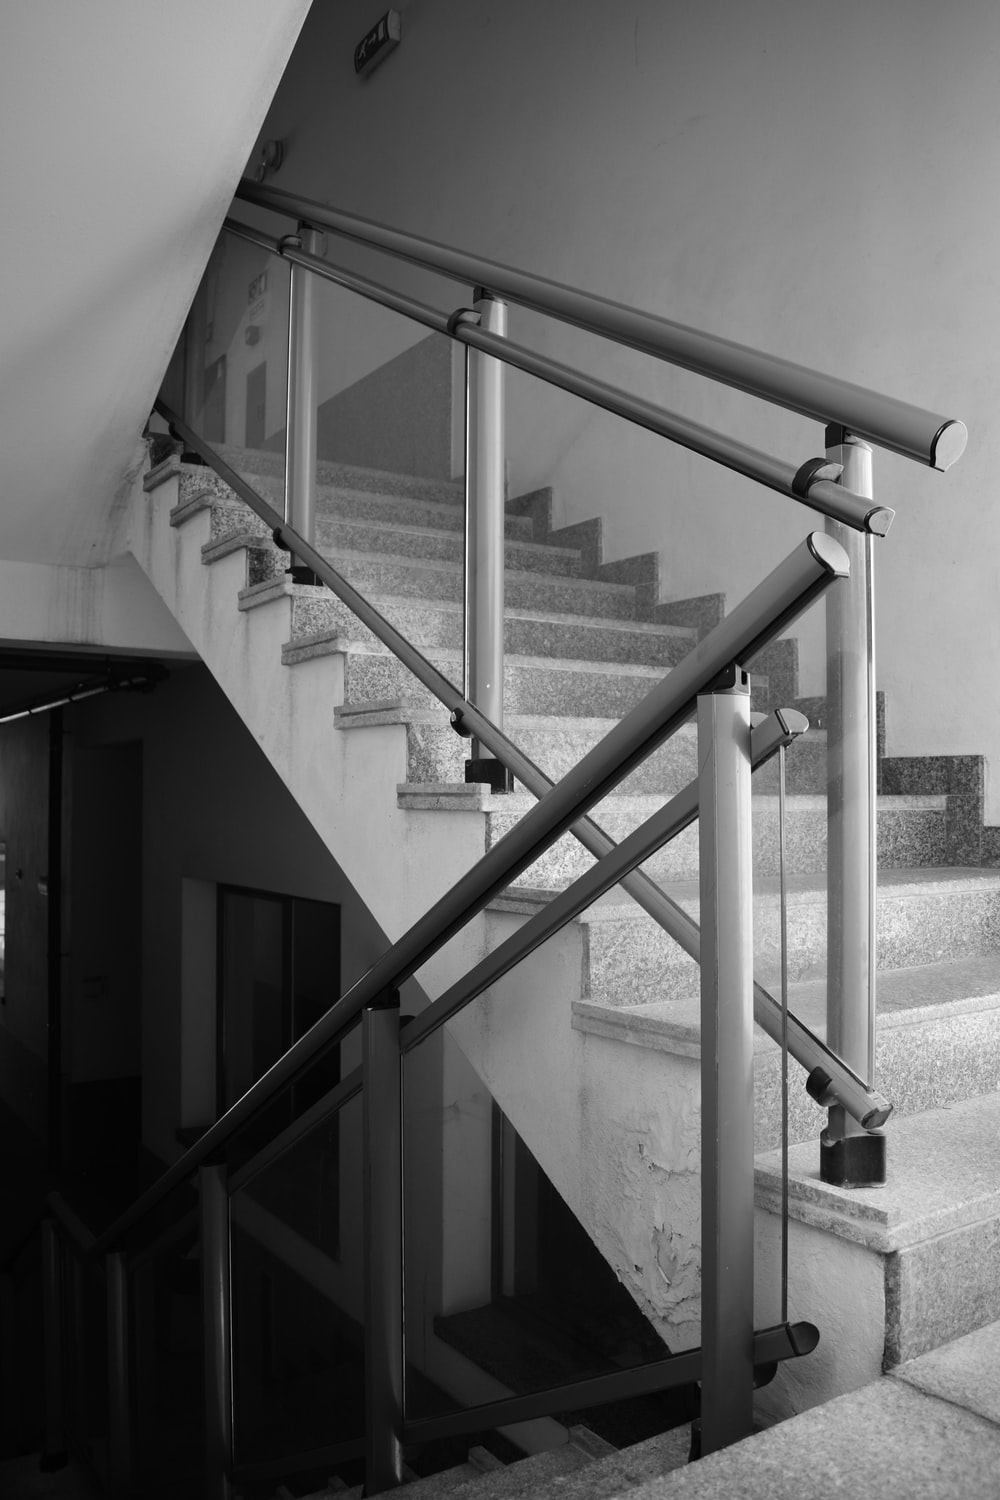 grayscale photo of a metal staircase